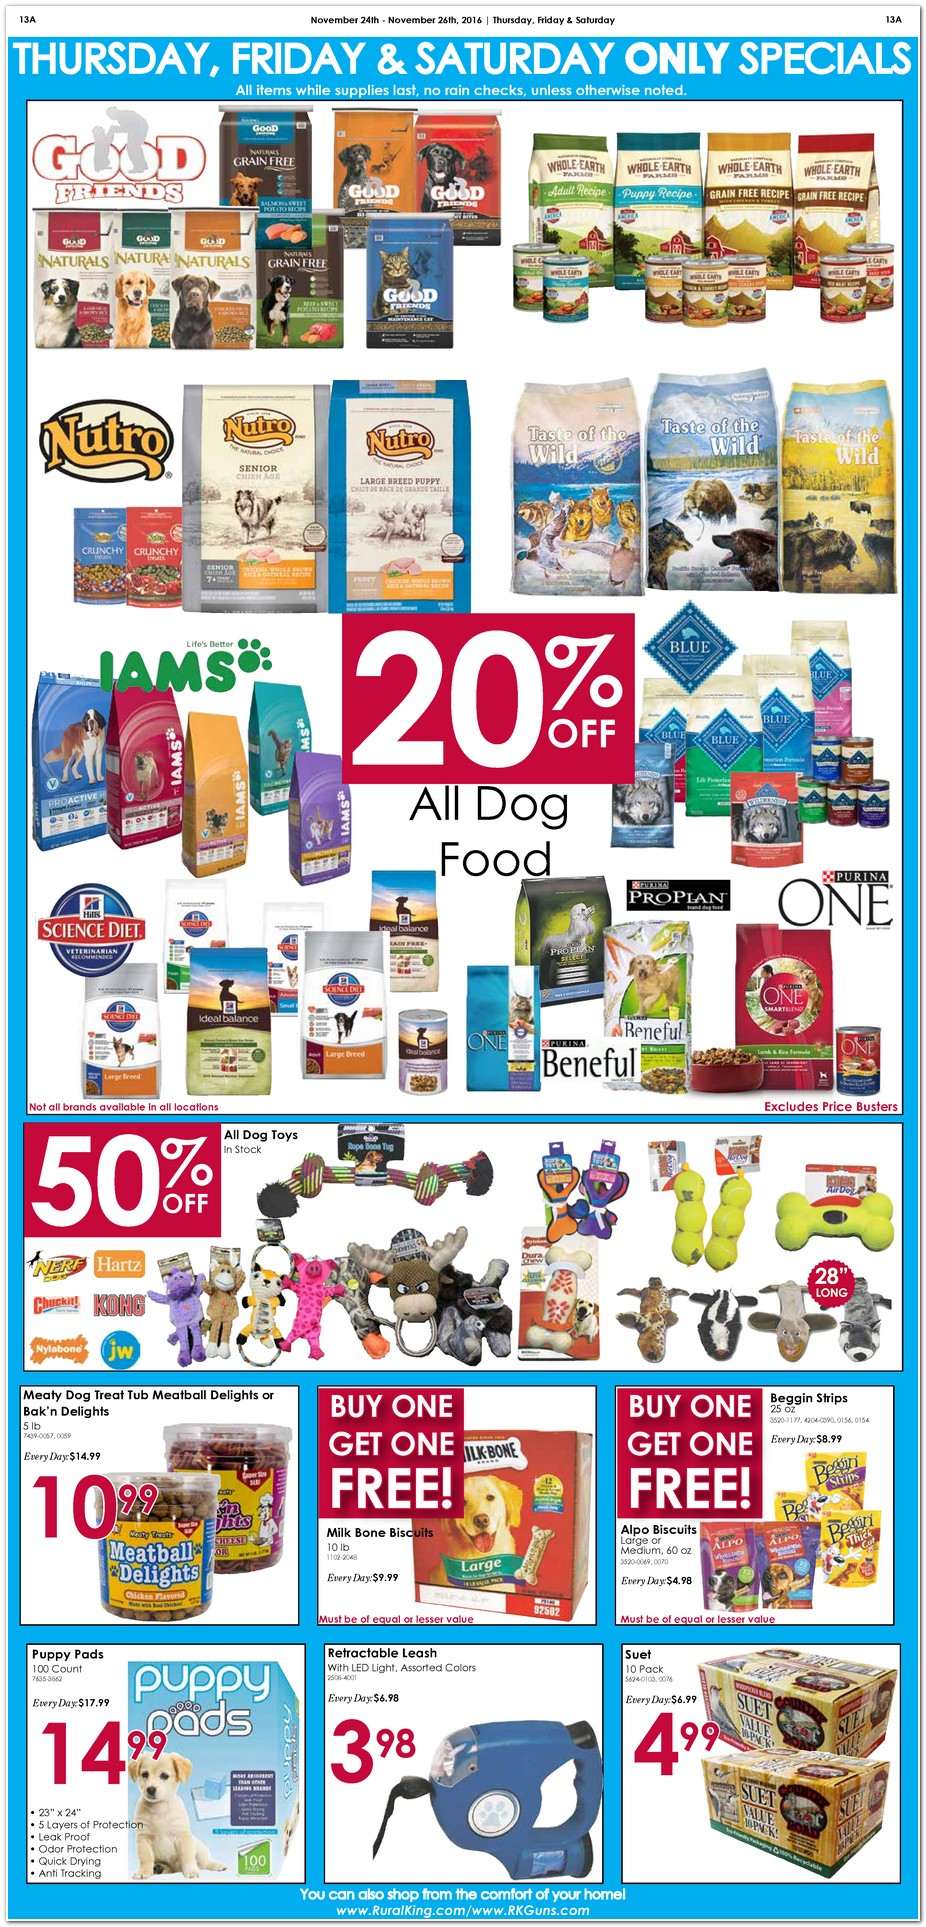 Winn Dixie Coupon. Look what's coming!!! This $5 off $40 Winn Dixie Coupon will be in the upcoming Winn Dixie Ad – hopefully all regions receive this one!!